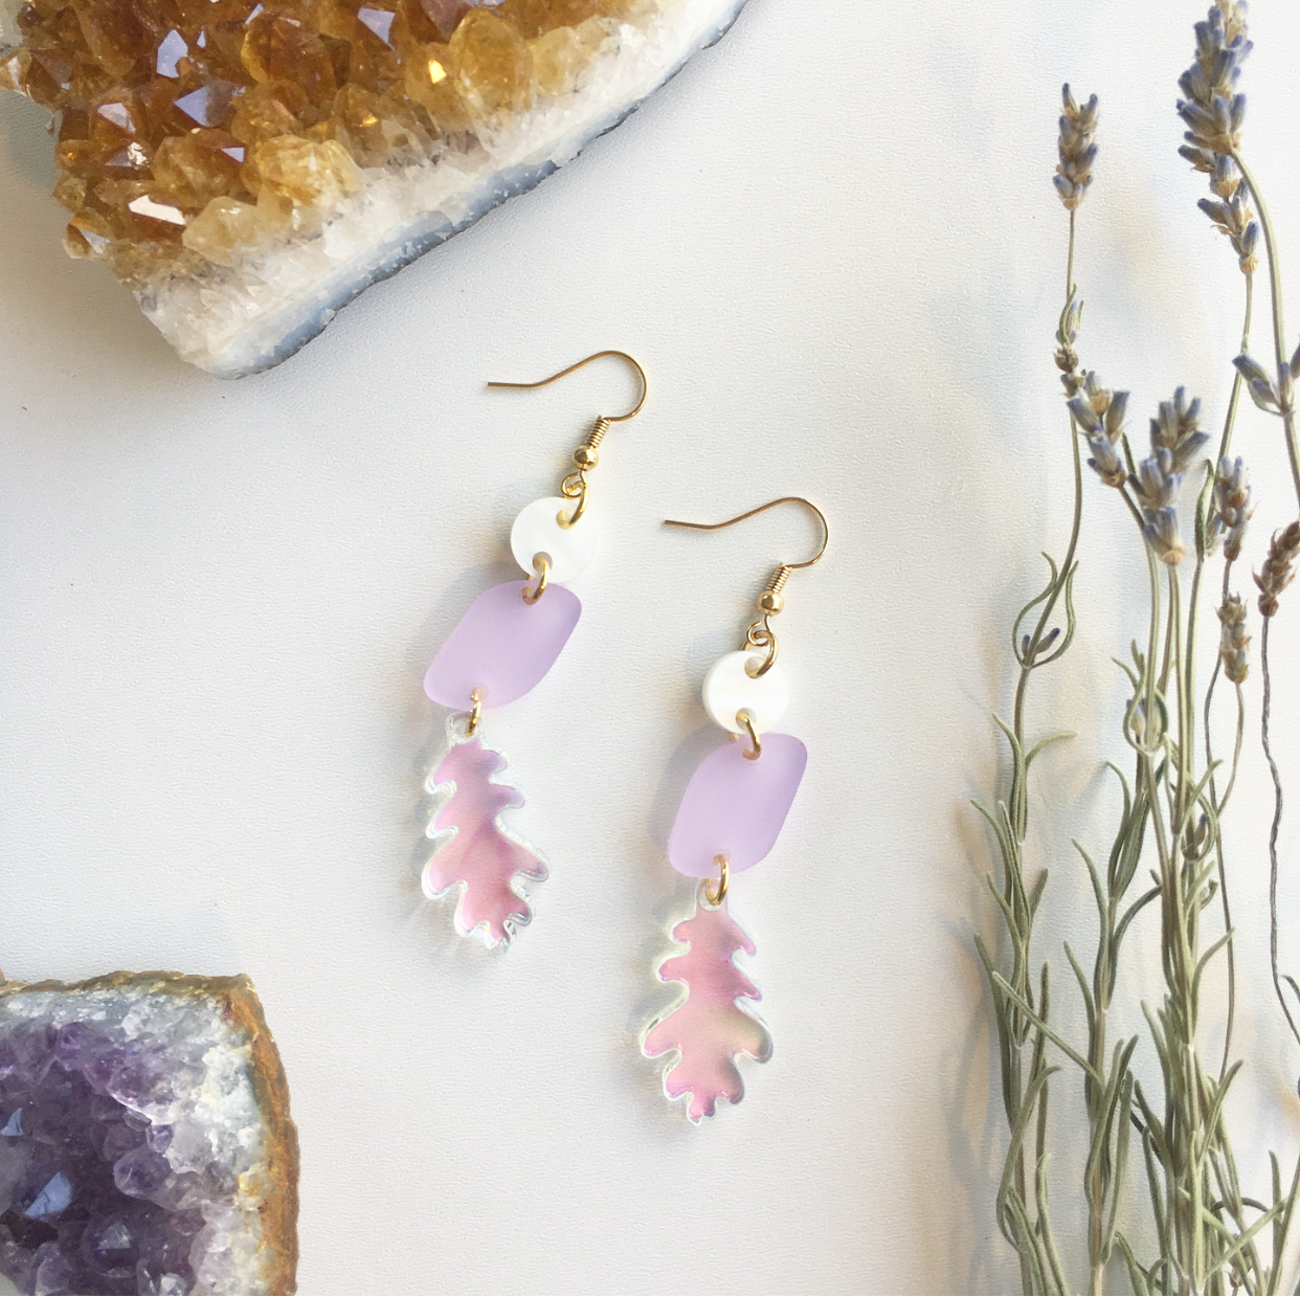 Laser-cut and individually constructed acrylic earrings{&nbsp;}/ Image: courtesy of Ellebrux // Published: 3.26.20 <br><p></p>